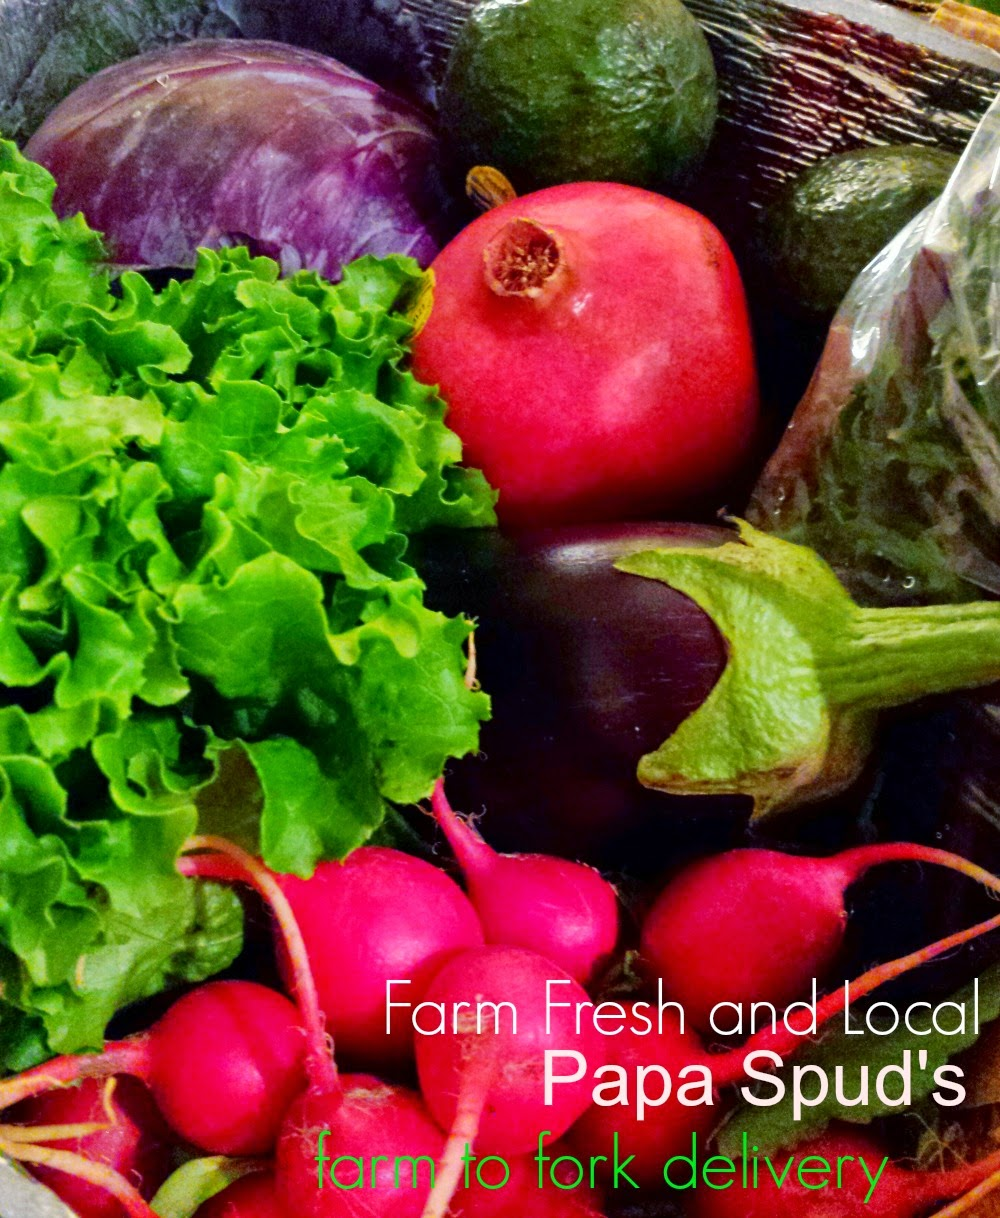 Produce Delivery in Raleigh, Durham, and Chapel Hill